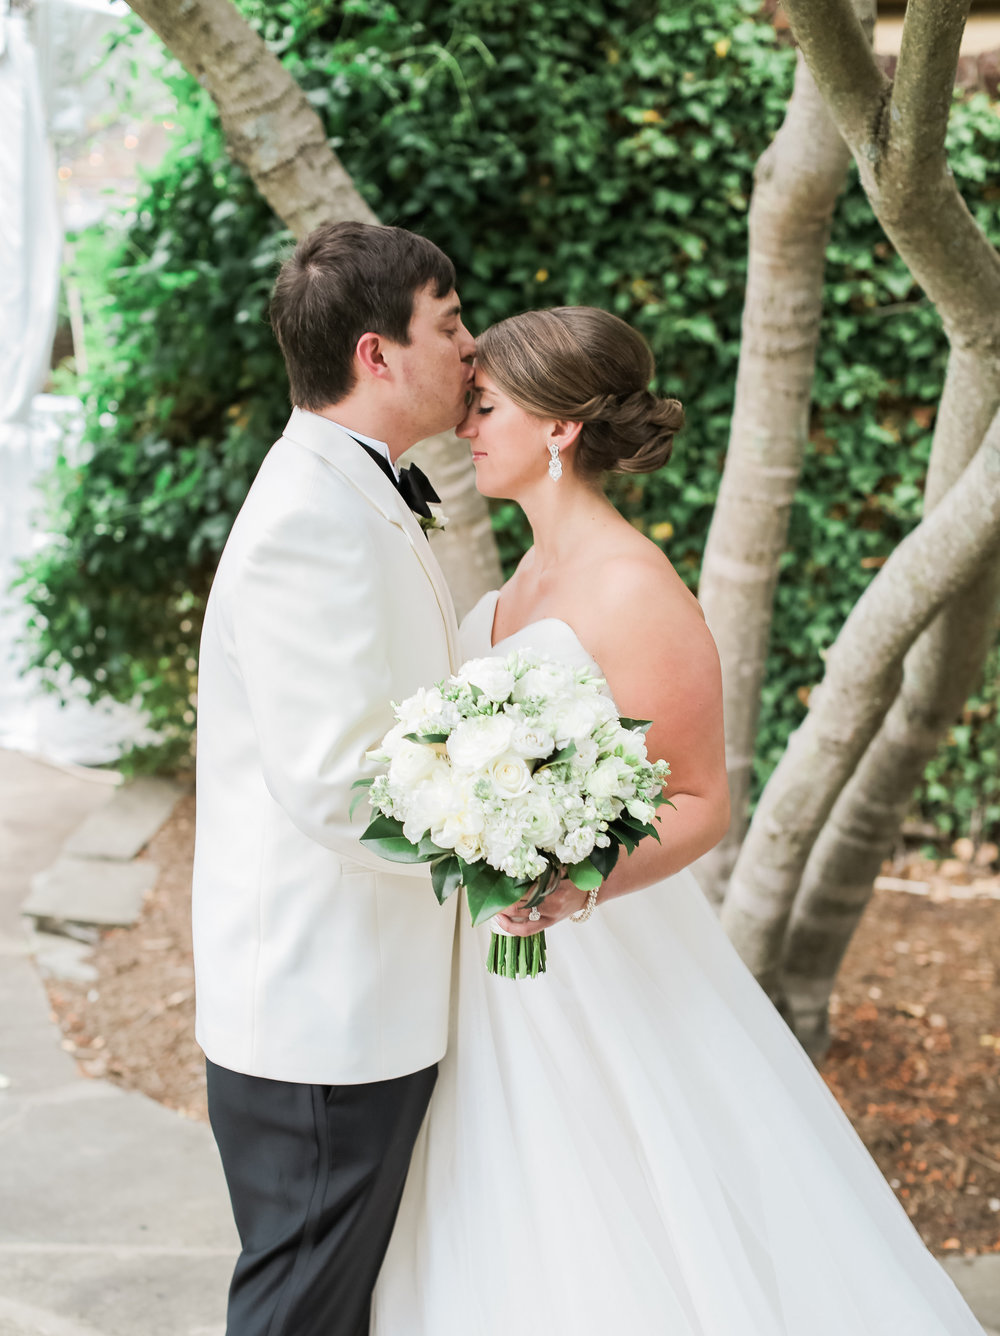 Landon Jacob Photography  | First Look at  The Graylyn Estate  in Winston-Salem, North Carolina